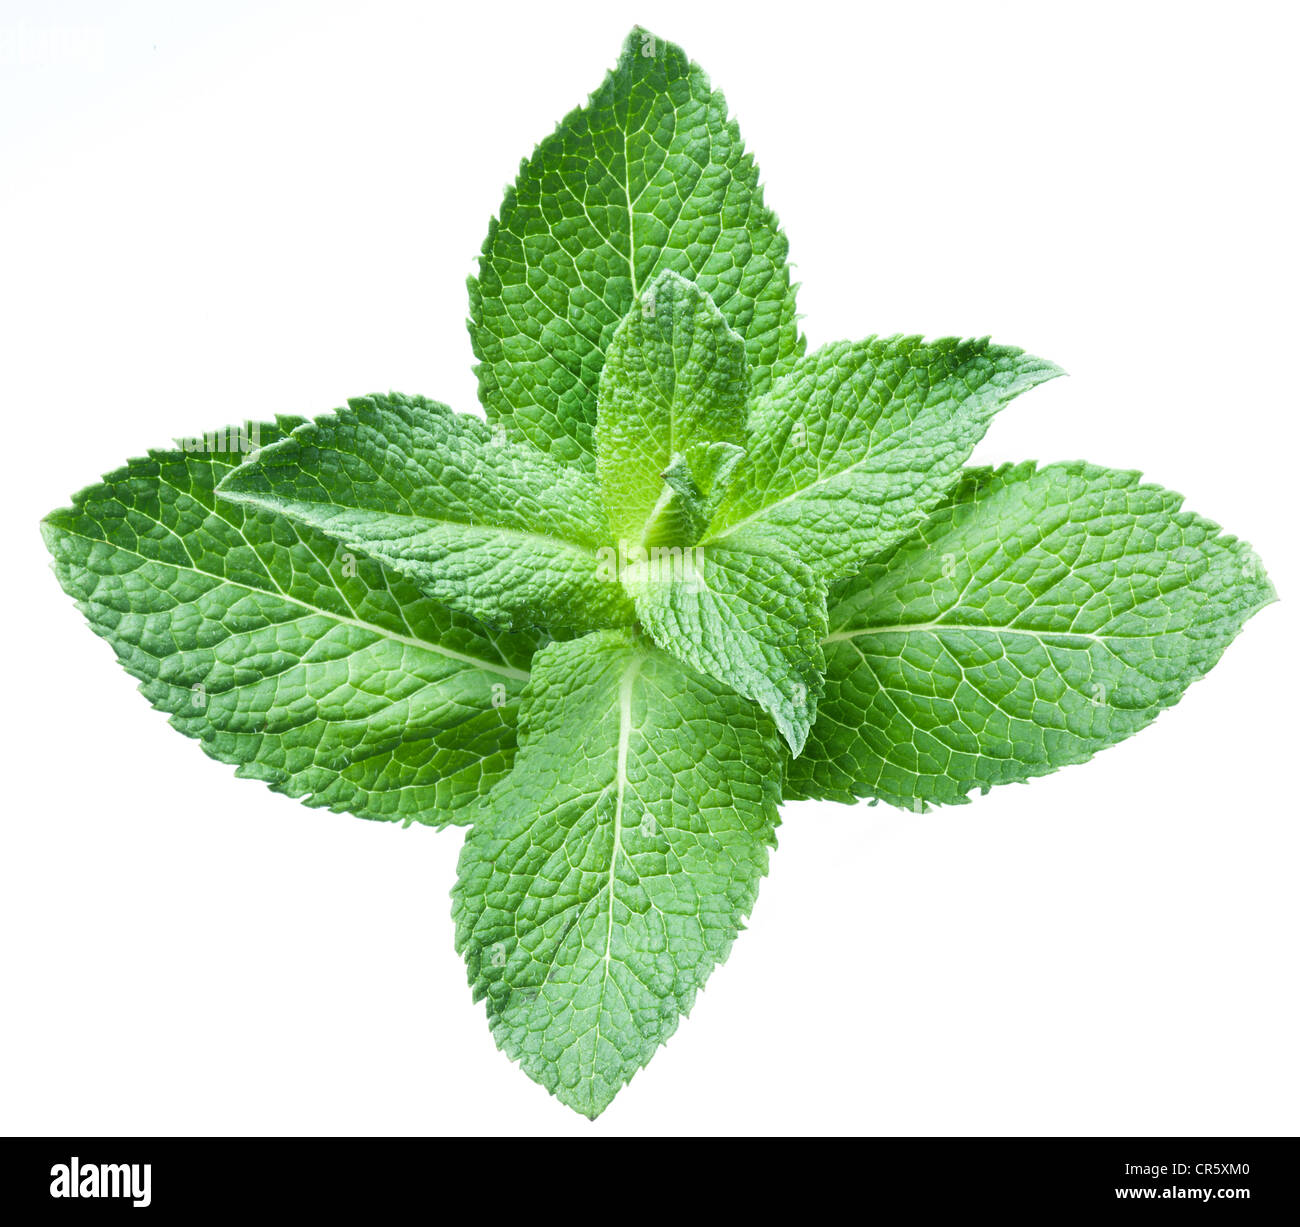 Leaves of mint on a white background - Stock Image